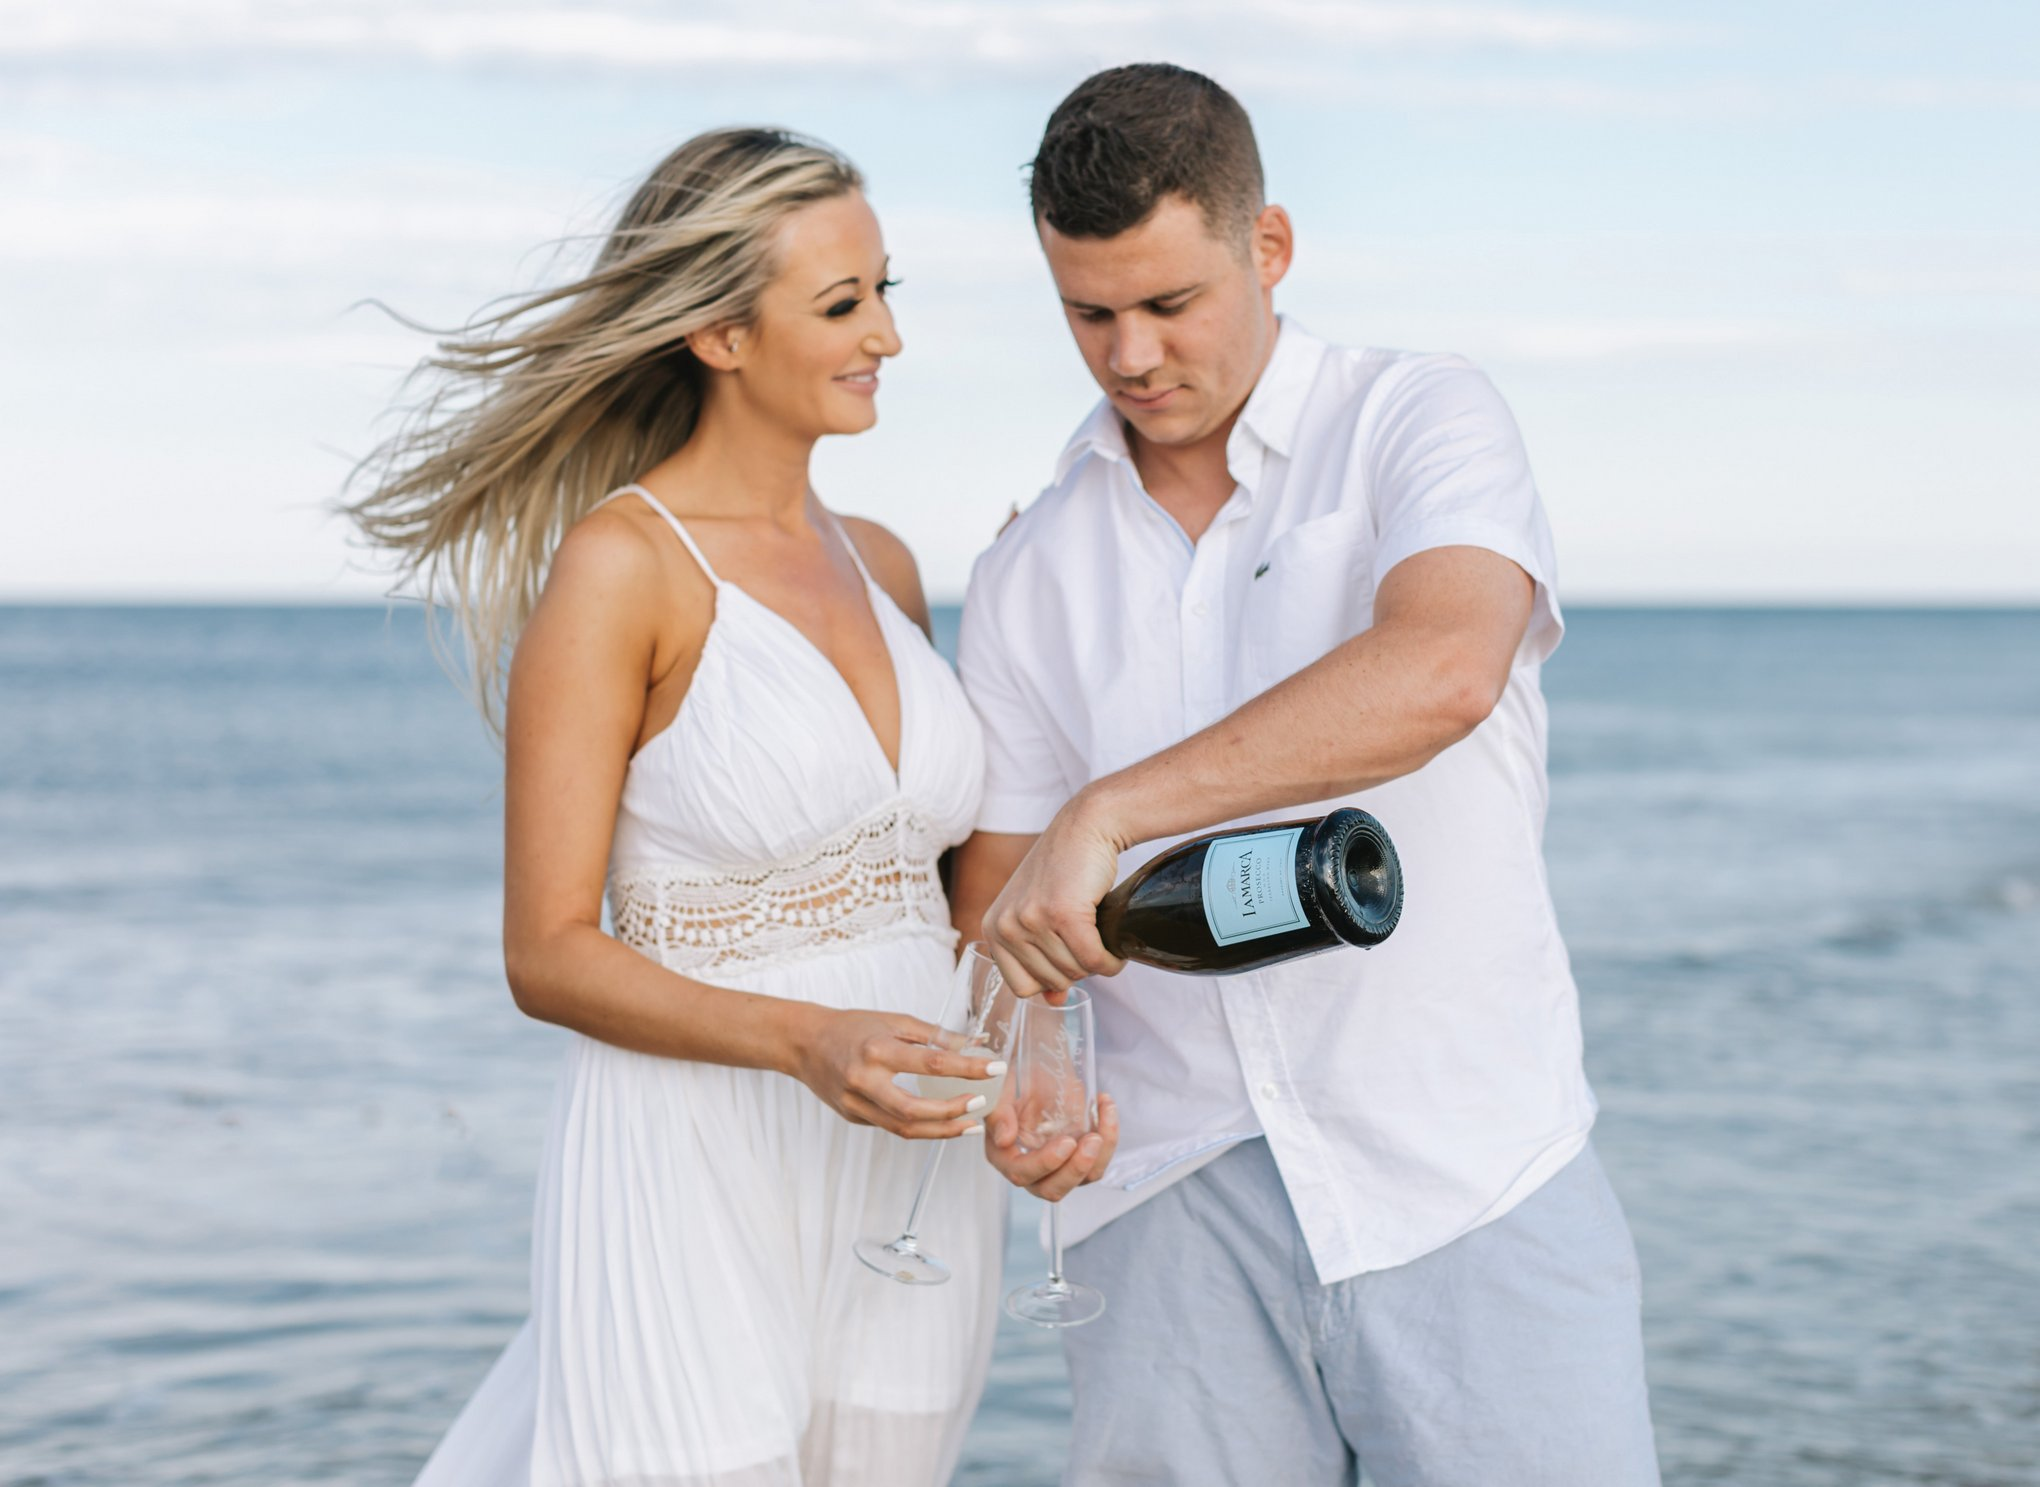 Duxbury-Beach-Engagement-7.JPG